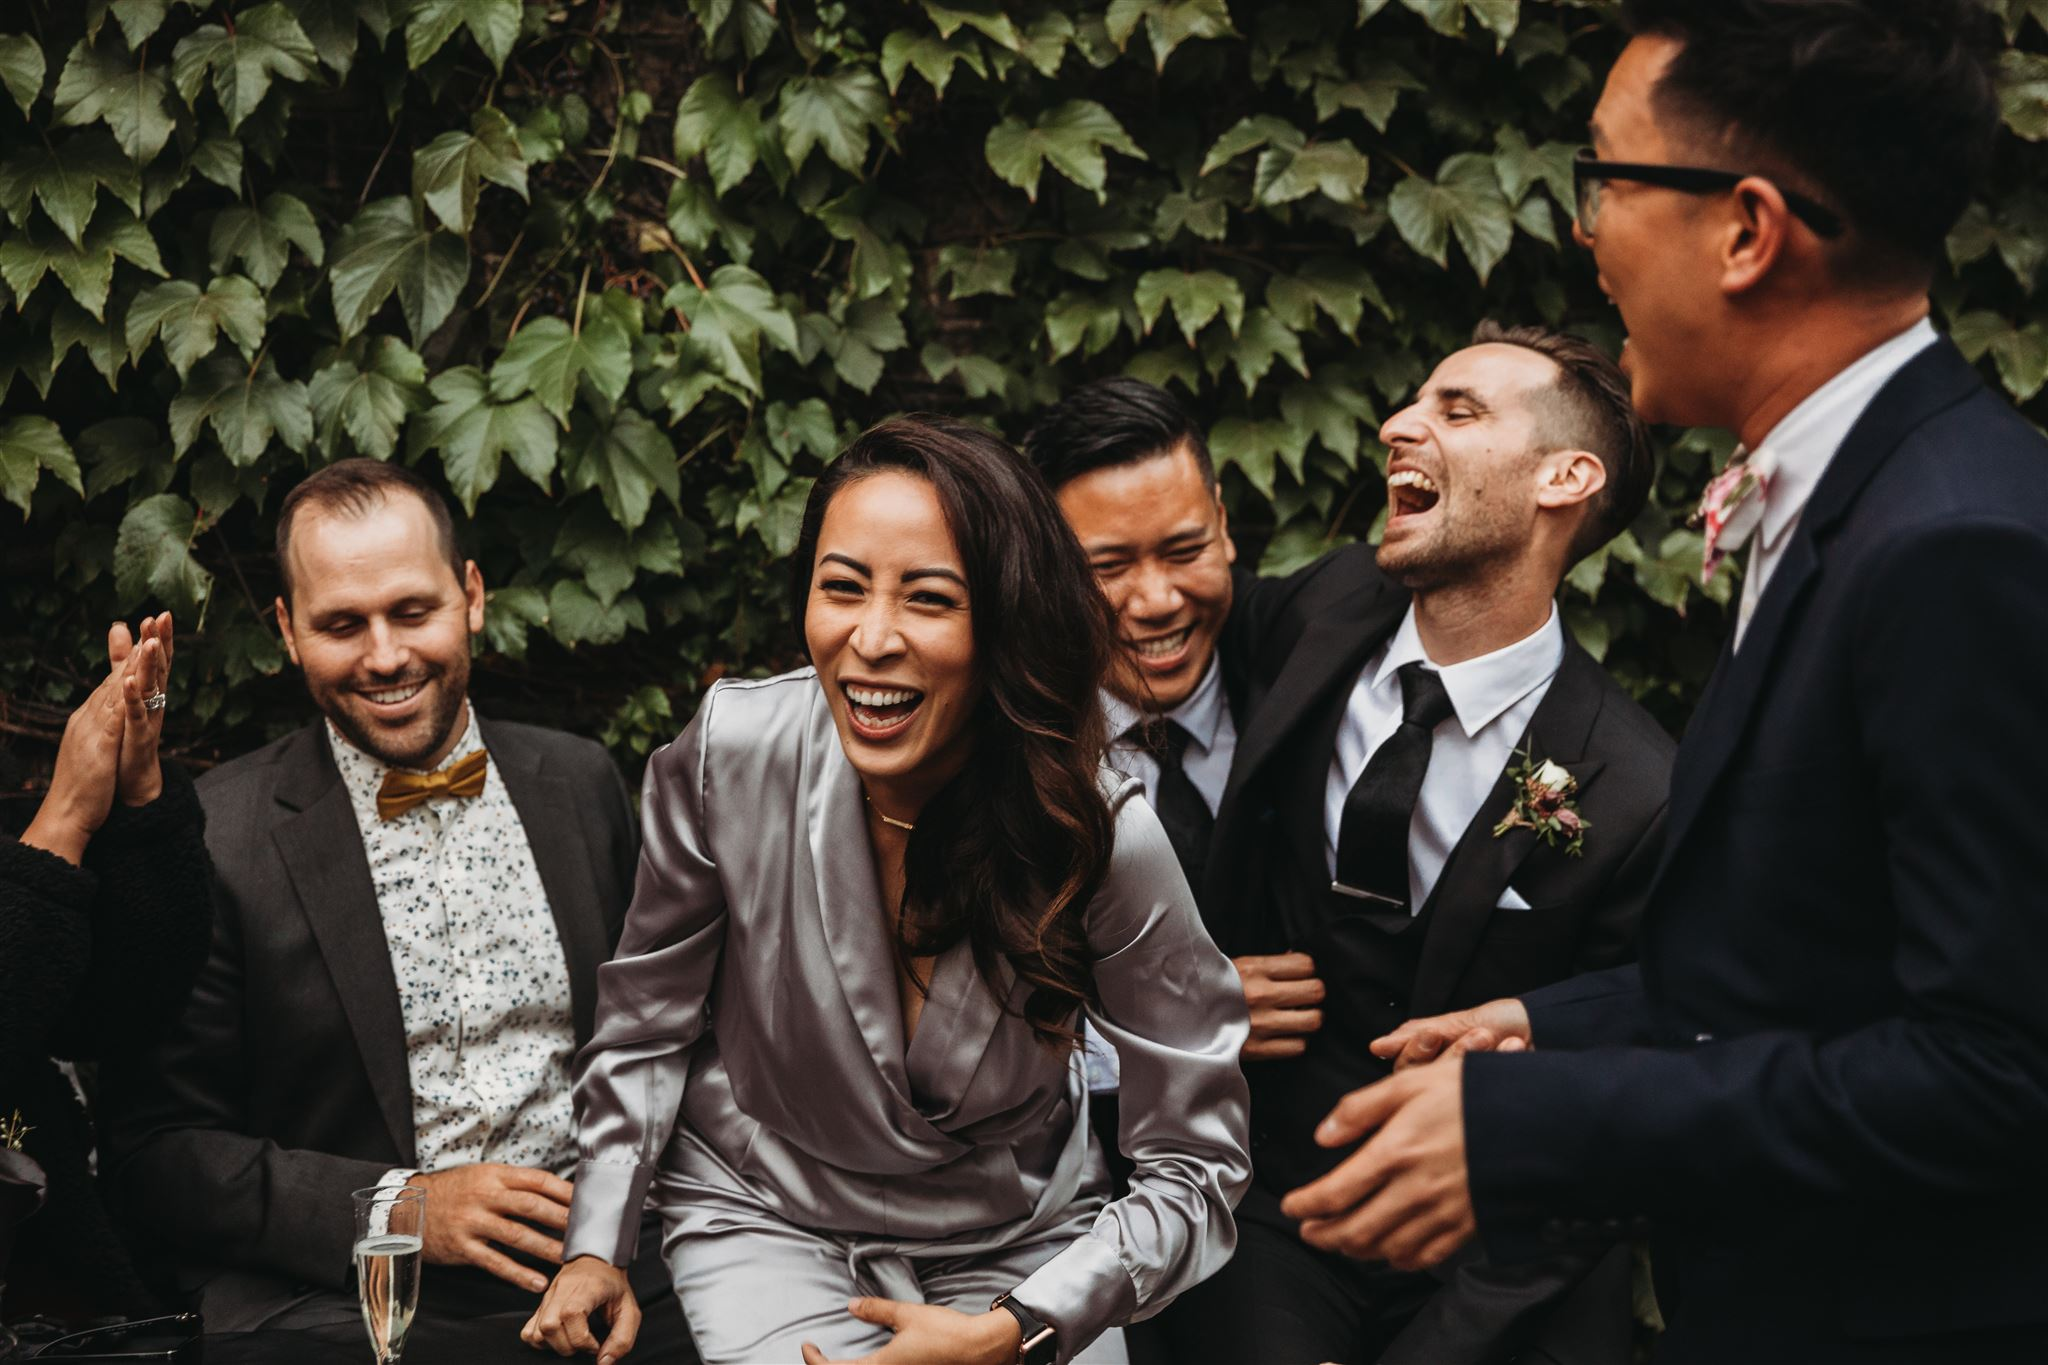 wedding photos ruined by phones, unplugged weddings